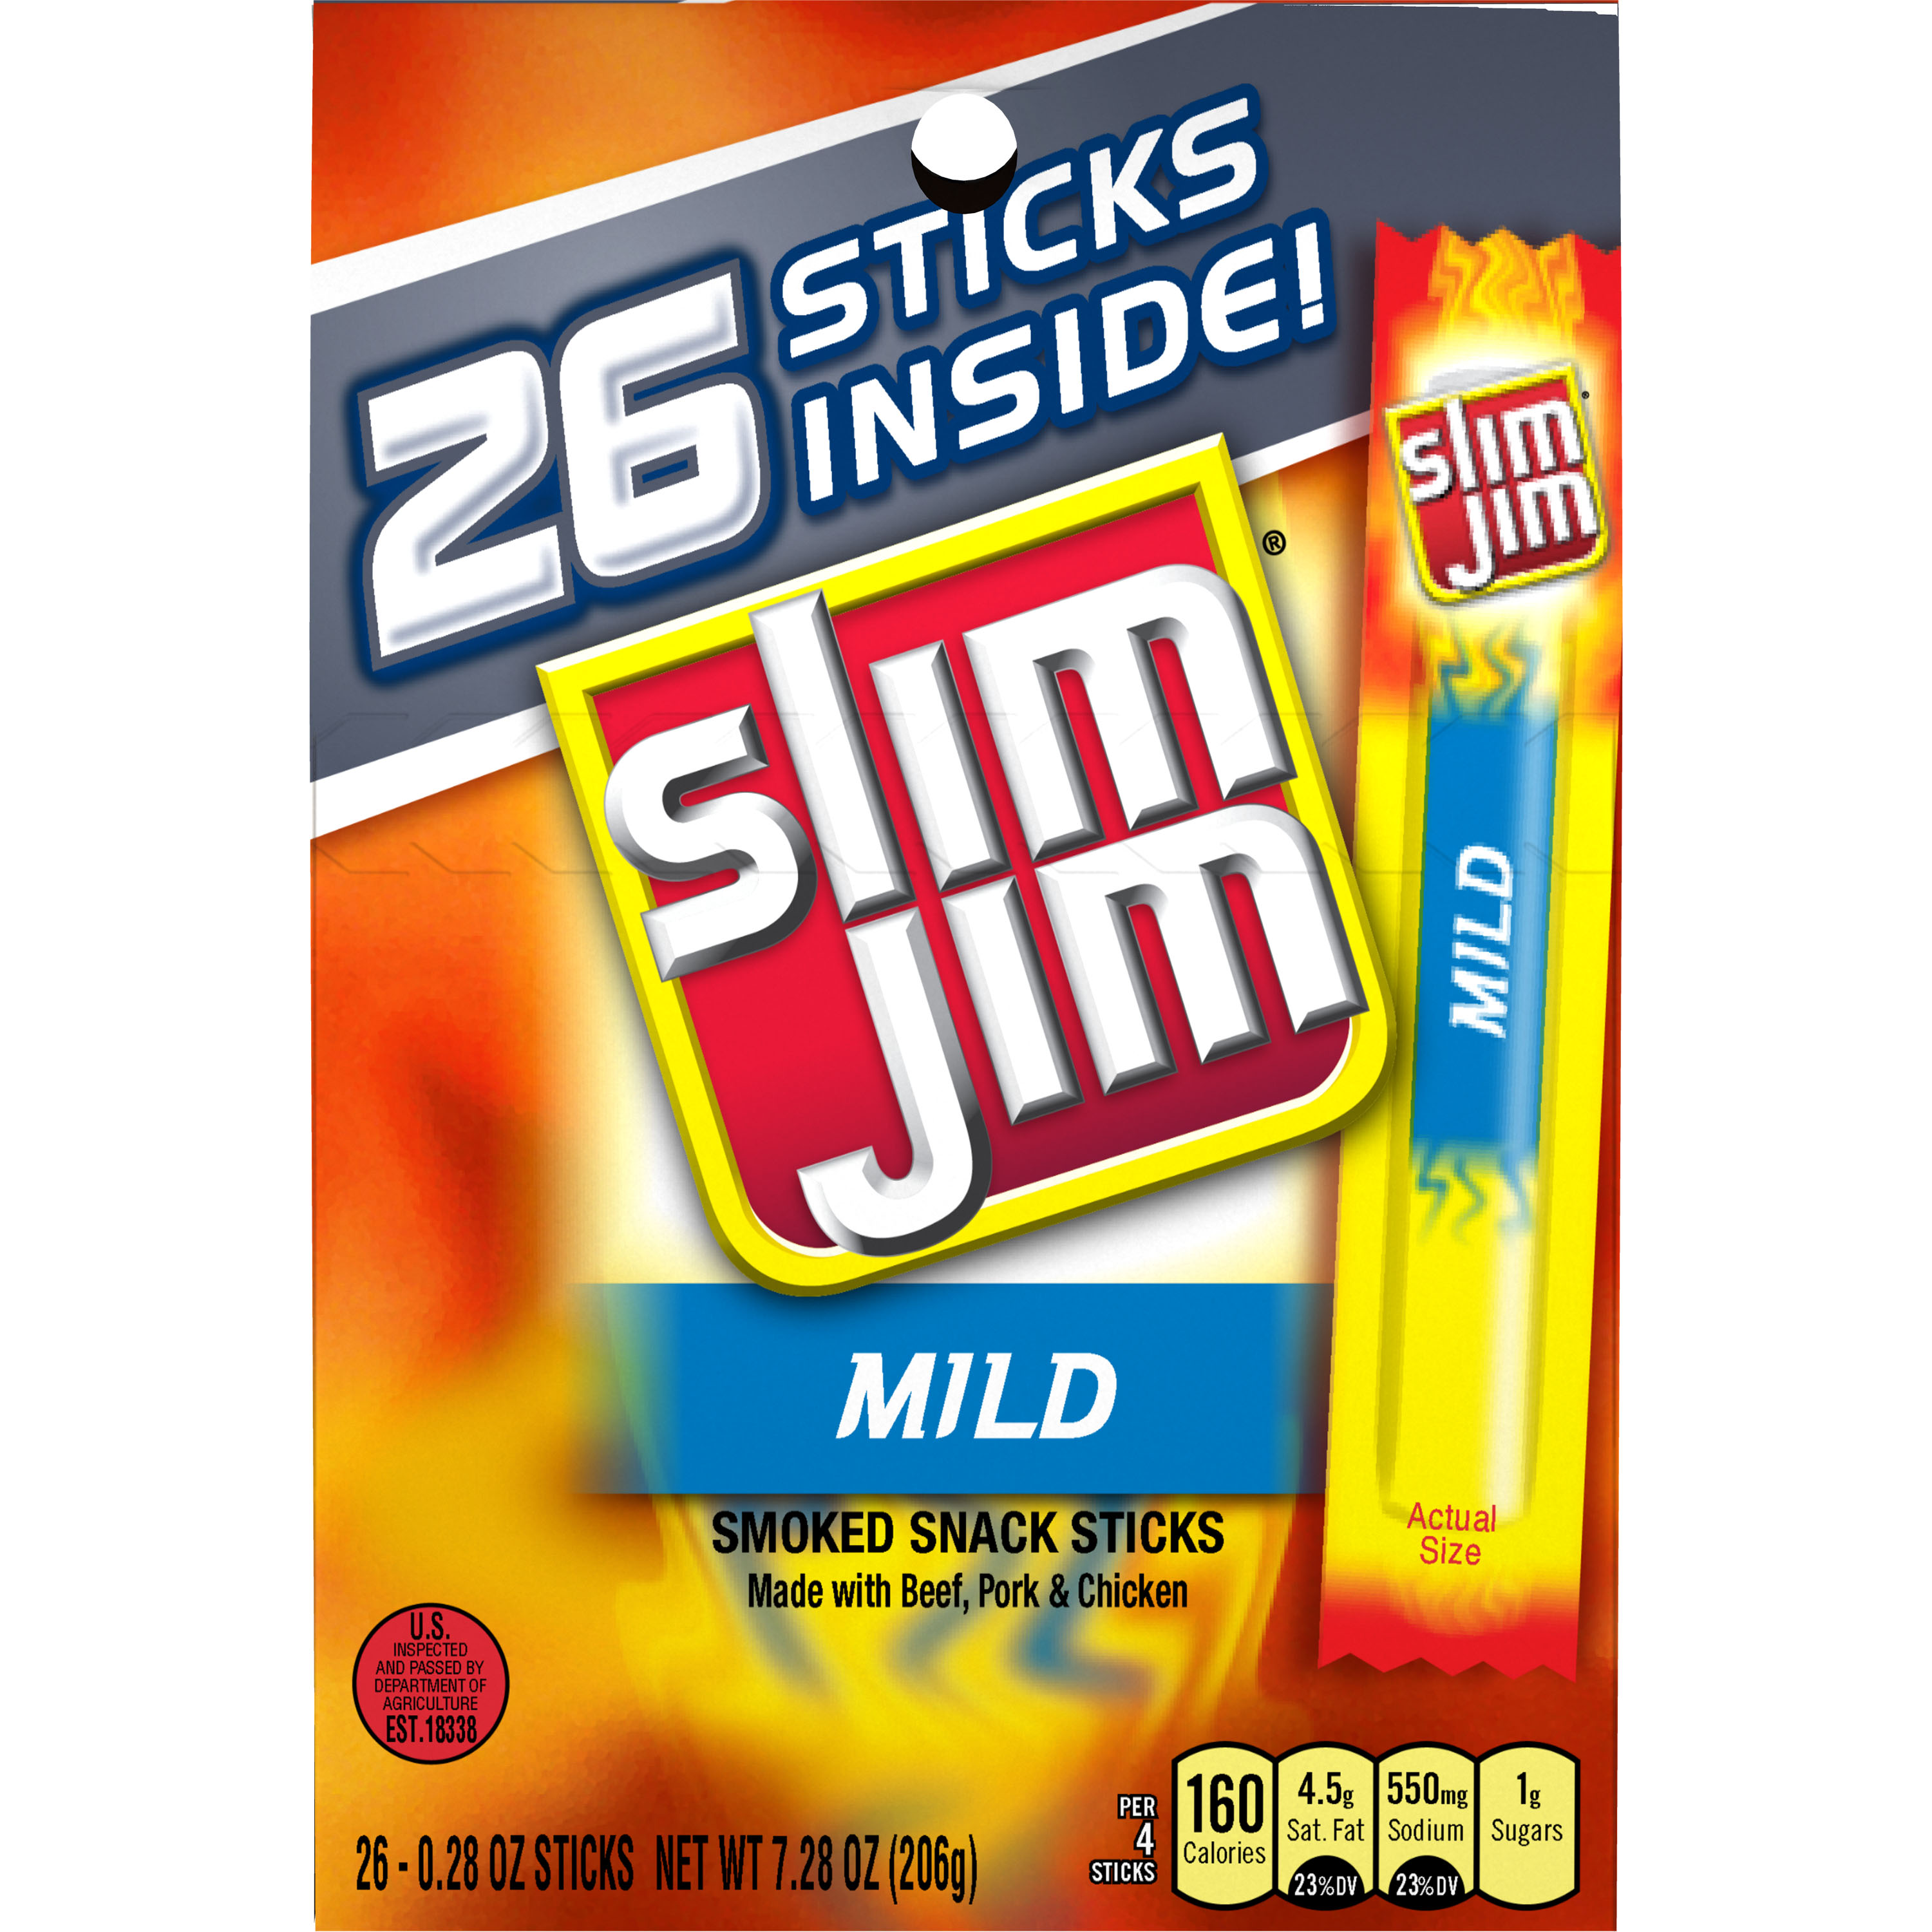 Slim Jim Mild Smoked Snack Sticks, 0.28 oz, 26 ct